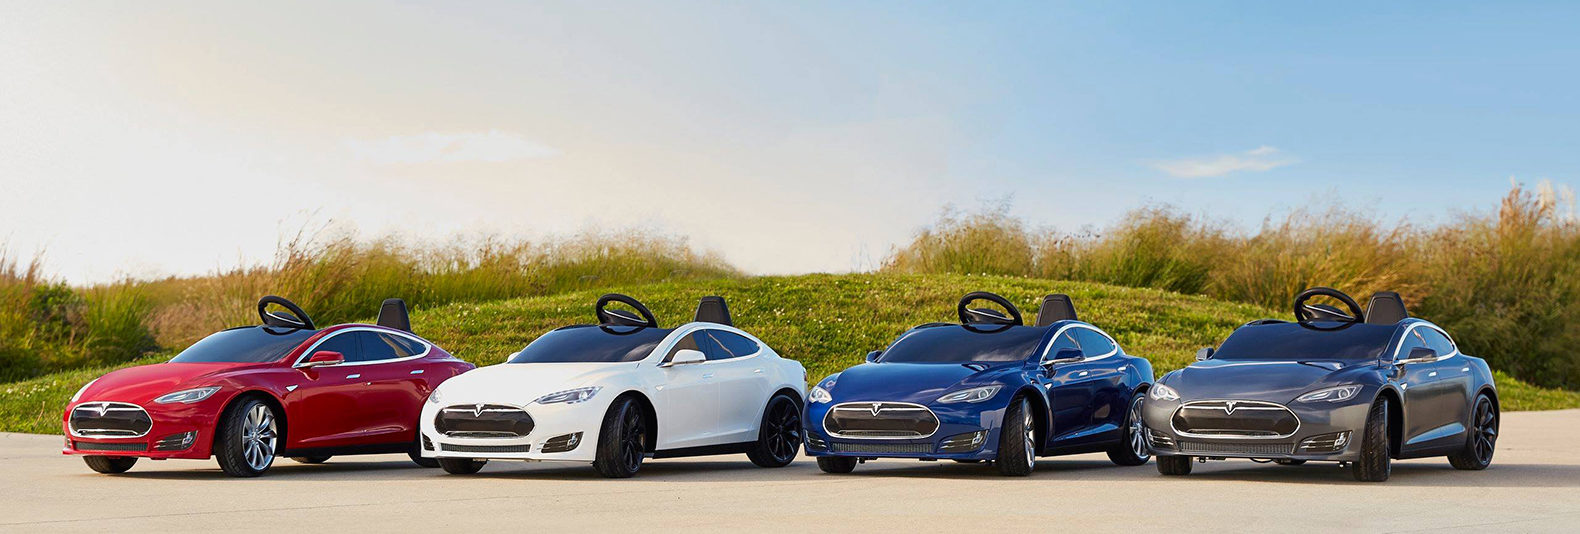 Check out this adorable $500 electric Tesla Model S just for kids ...